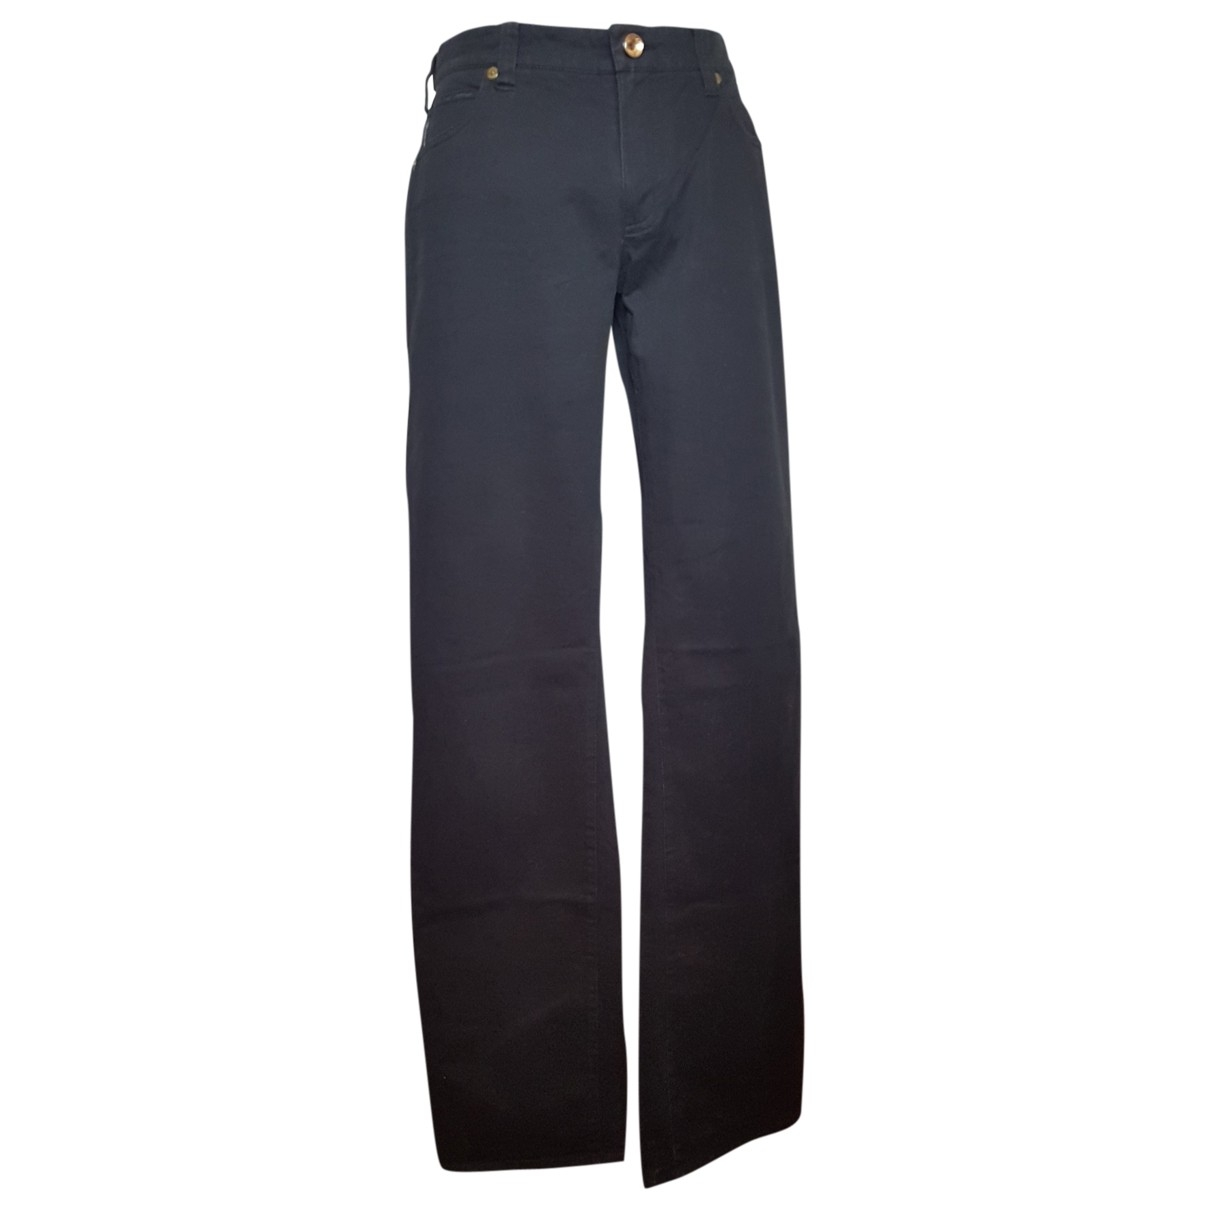 Armani Jeans \N Black Cotton - elasthane Jeans for Women 31 US